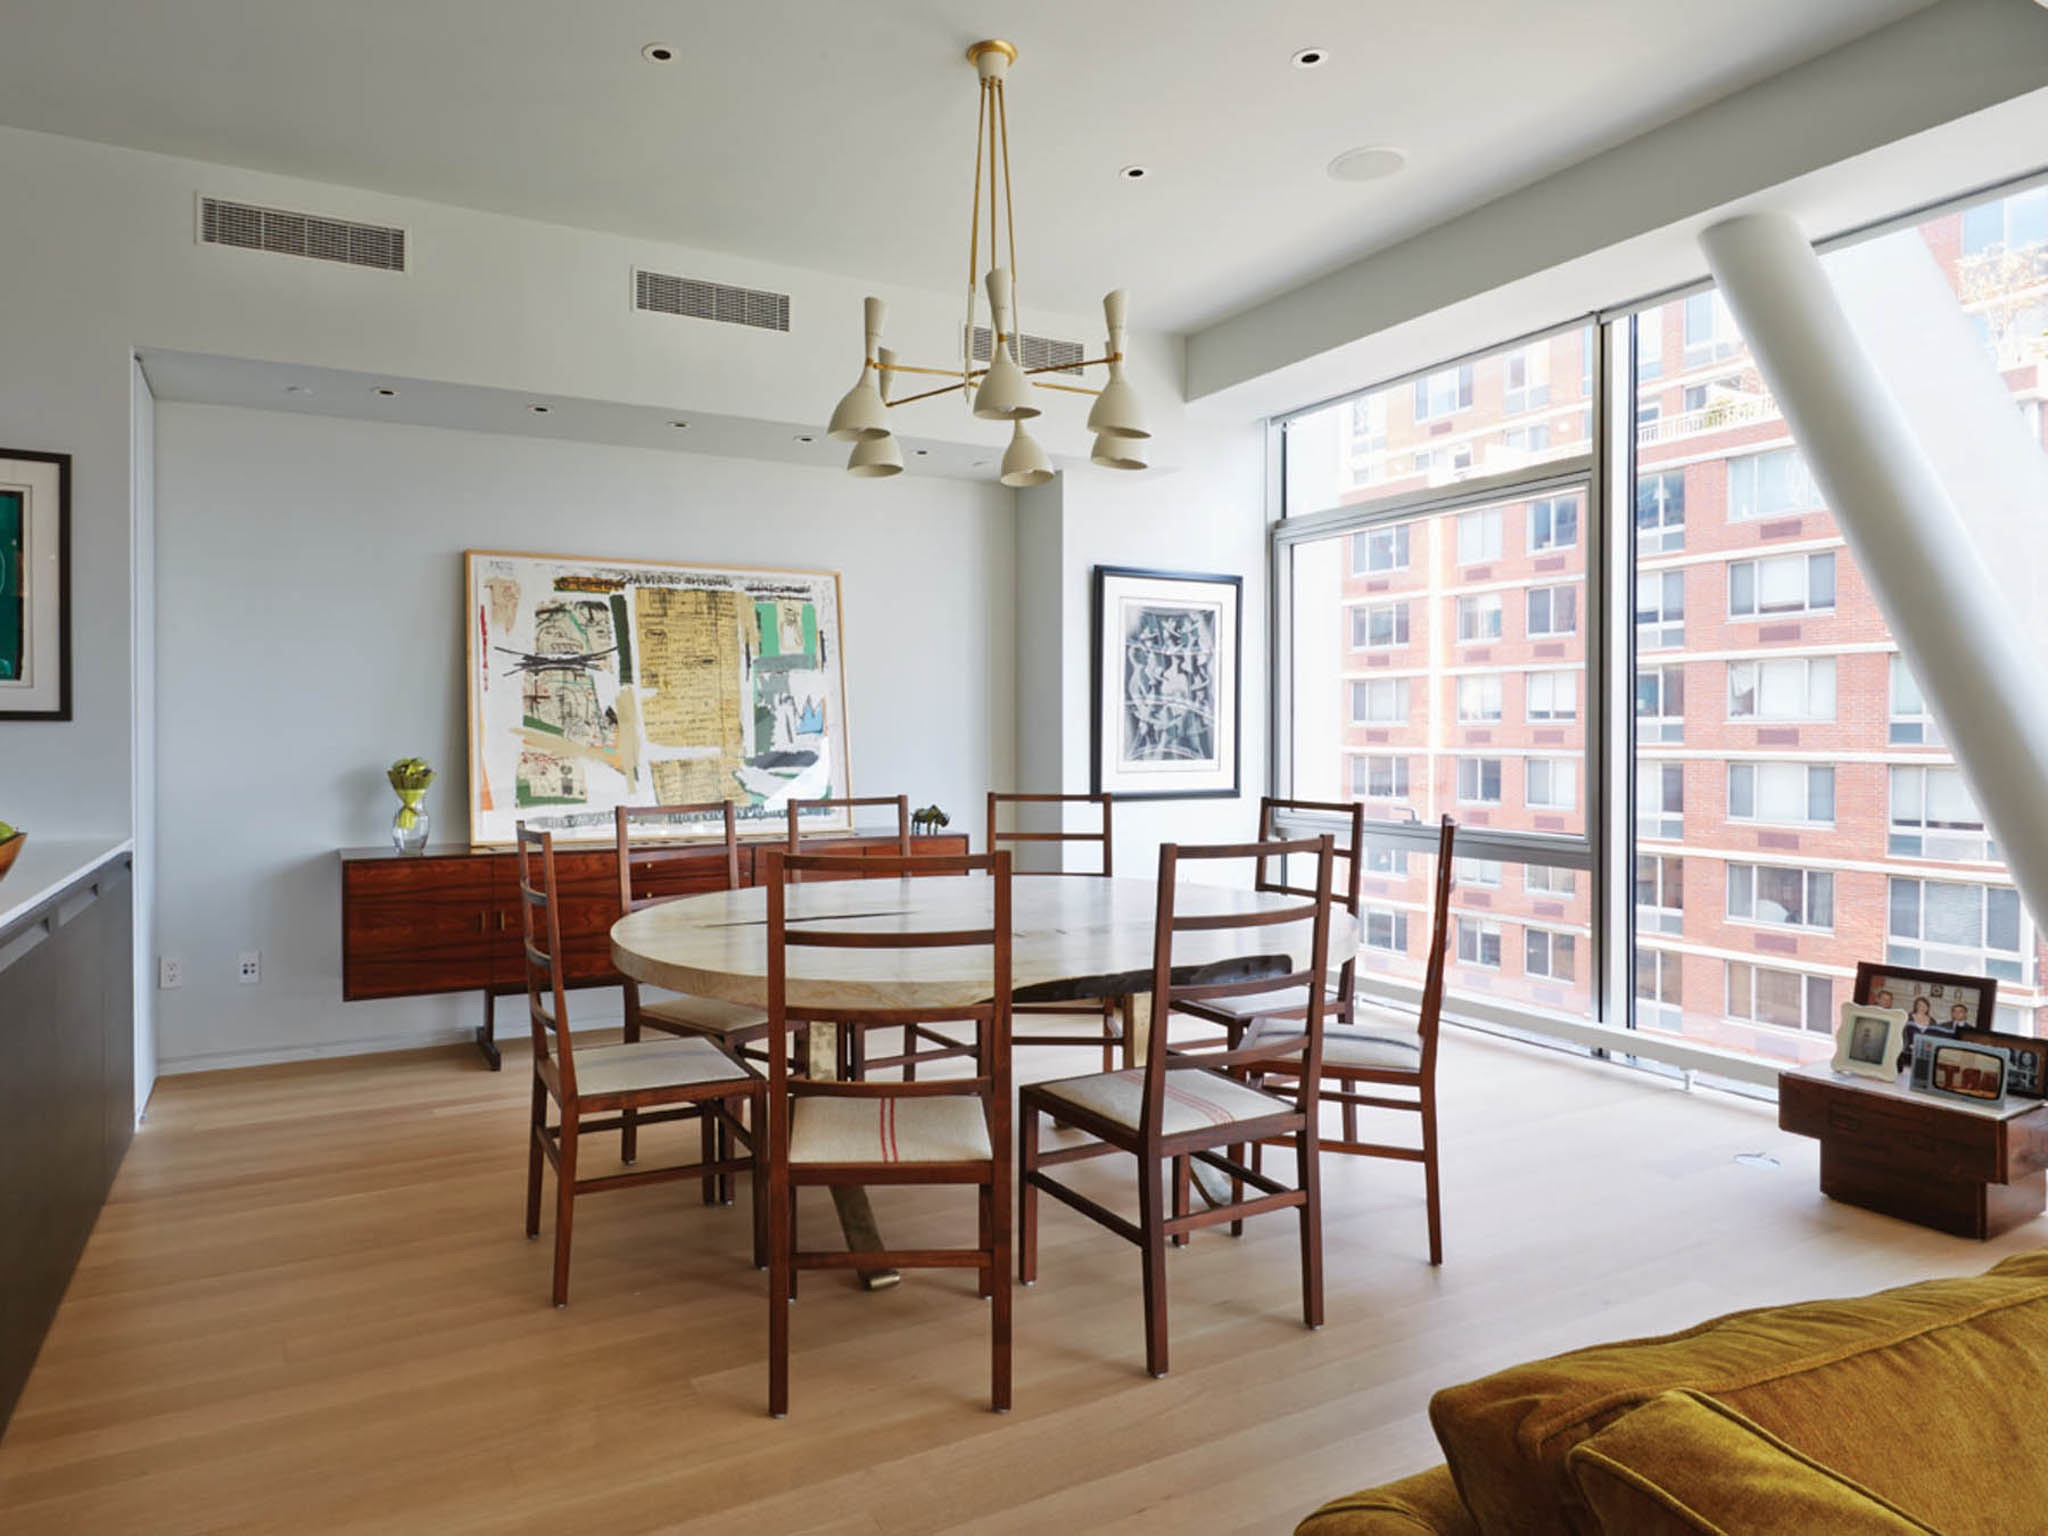 Minimalist Apartment Dining Room With 8 Chairs And Round Table (Image 20 of 25)